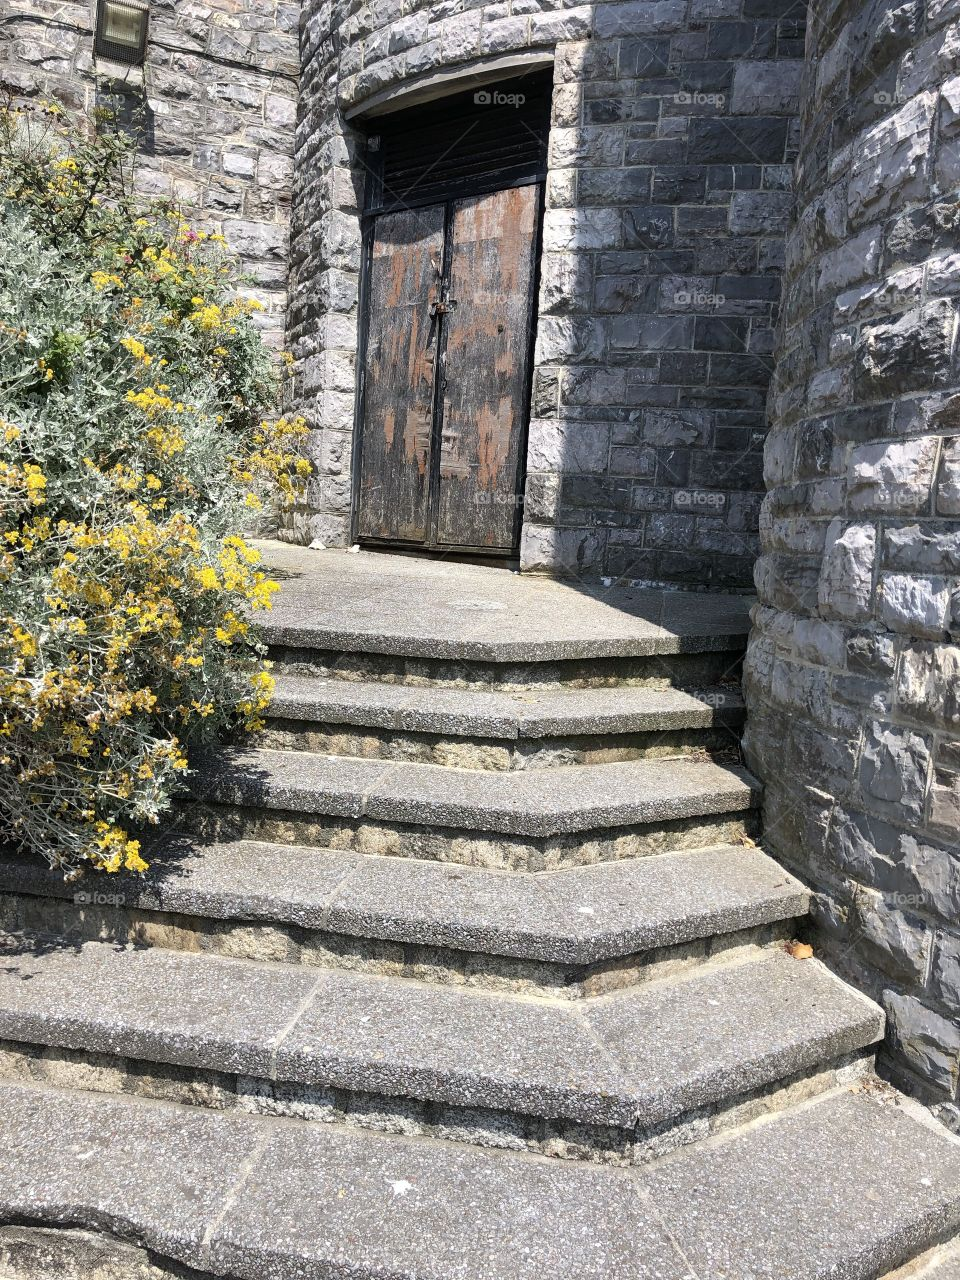 Some nice steps, but a shame about the rusty looking and tatty door.